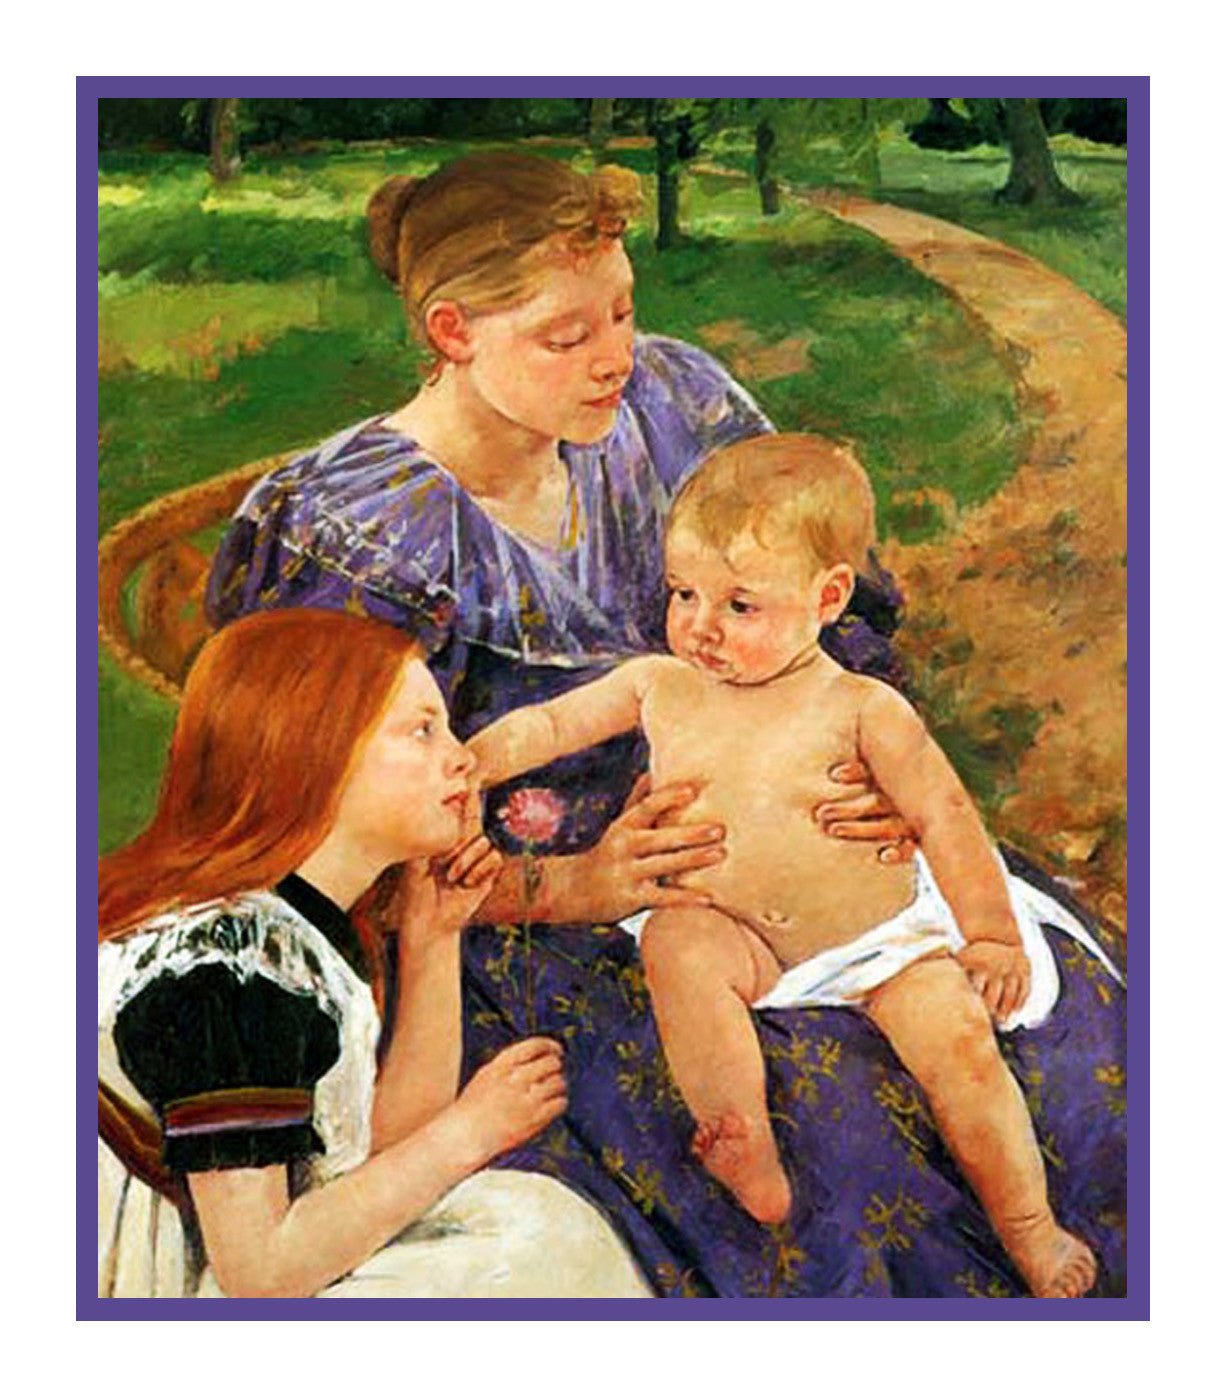 A Family Outing By American Impressionist Artist Mary Cassatt Counted Cross Stitch Or Needlepoint Pattern